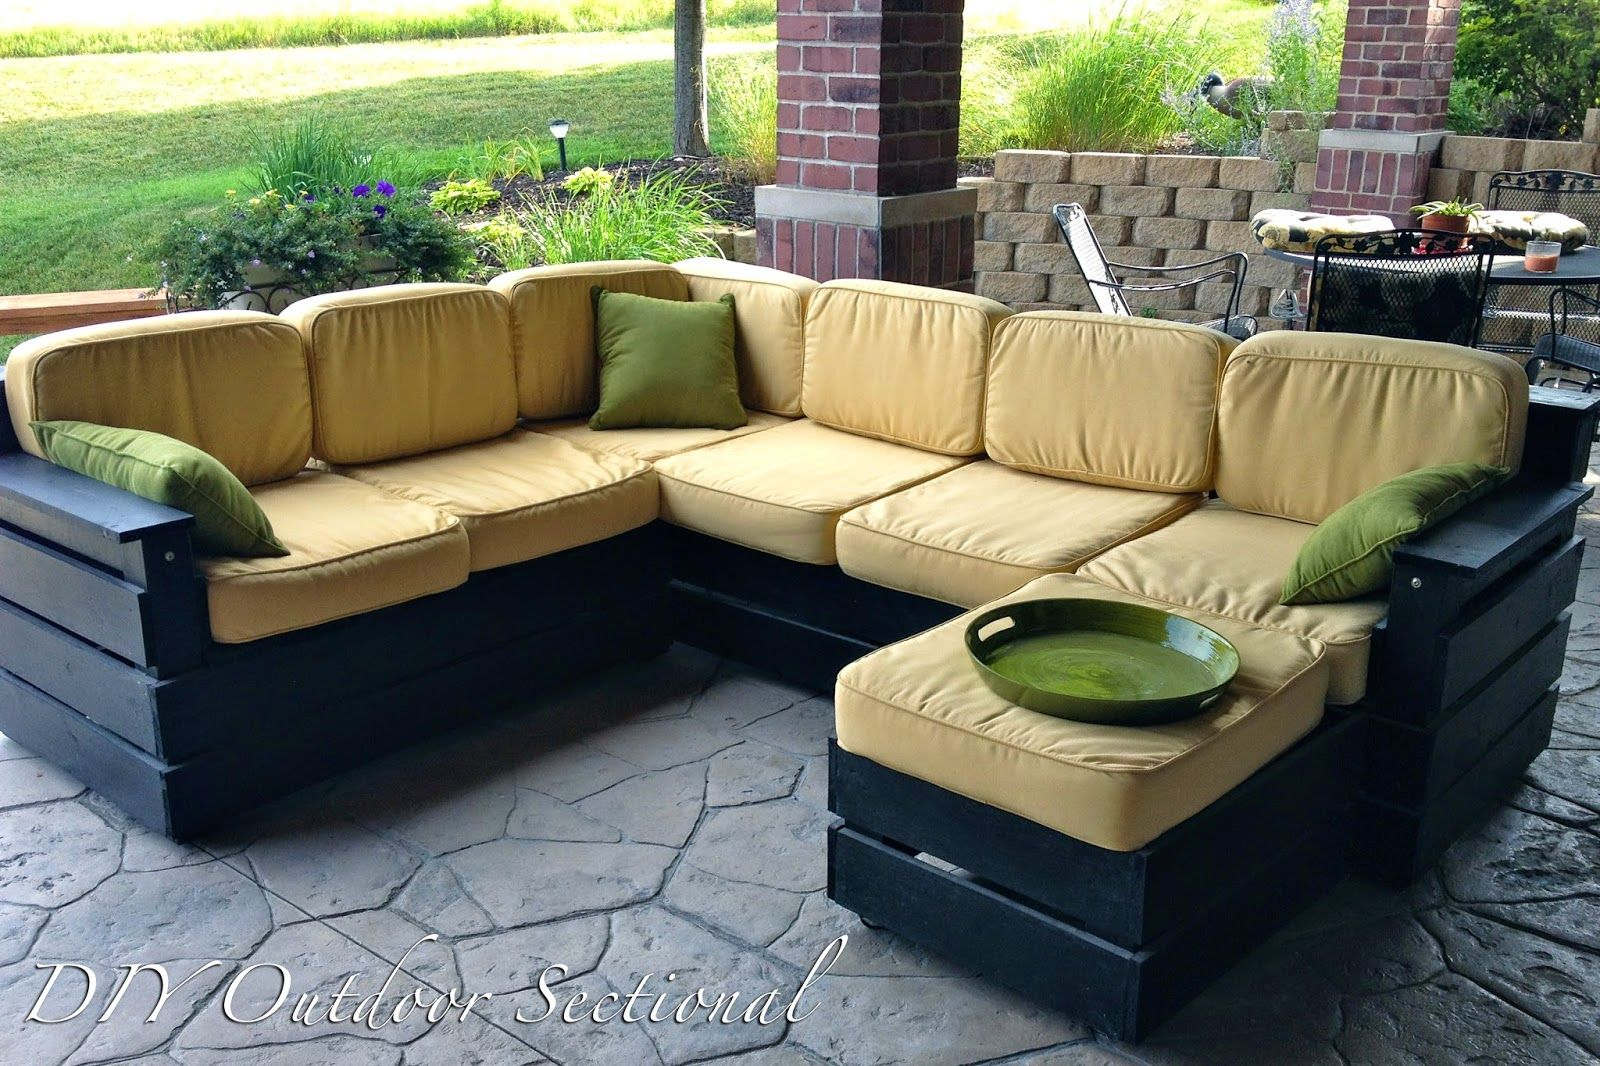 DIY Outdoor Sectional. Build it yourself out of regular